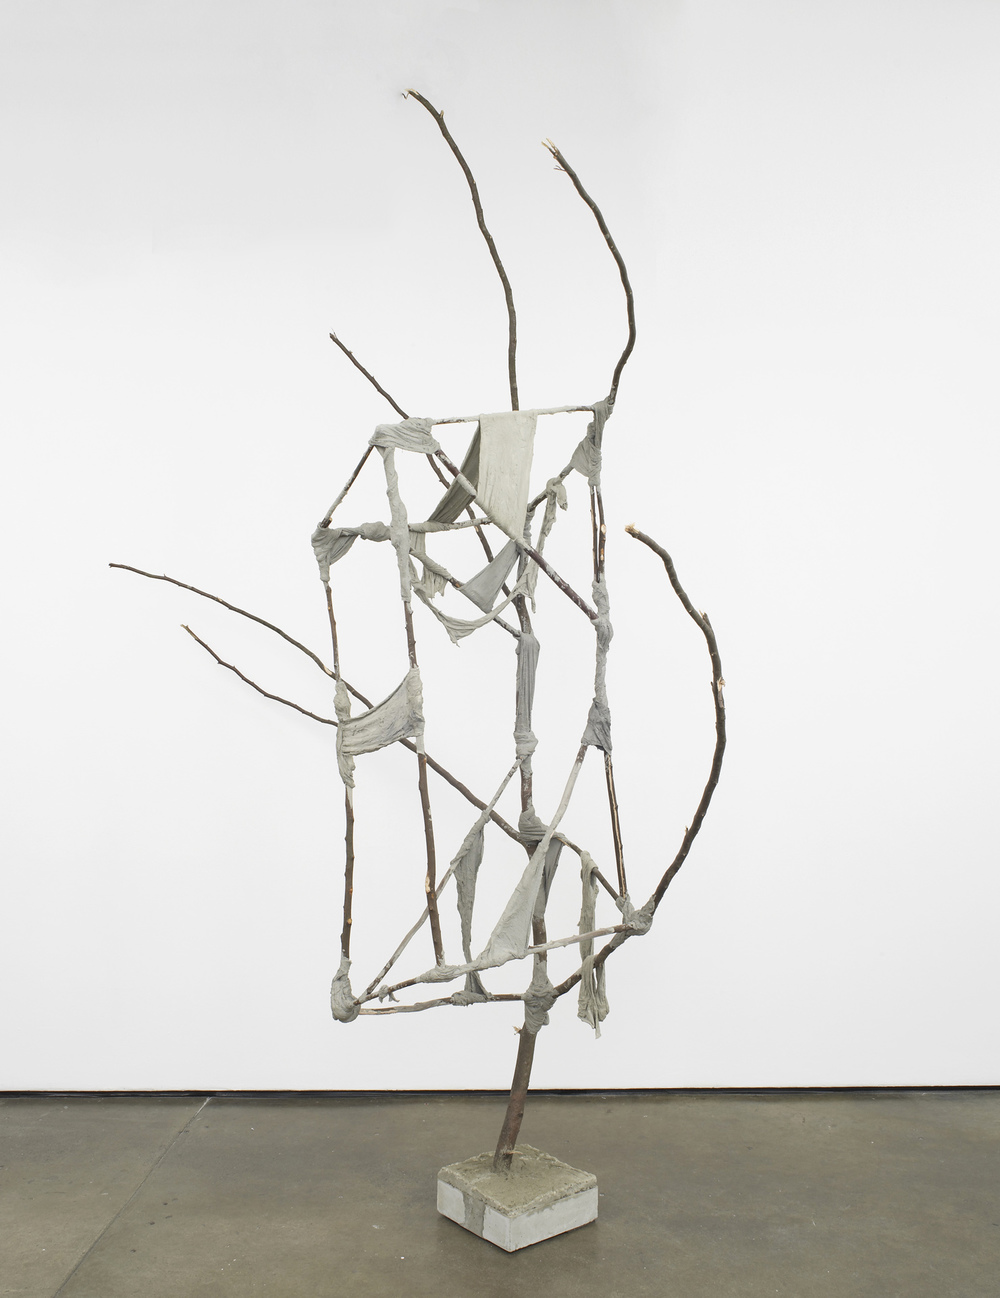 Jungle Camp (Spax Galore) 2012 Concrete, metal, screws, plaster bandages, branches 266 x 250 x 71 cm / 104.7 x 98.4 x 28 in